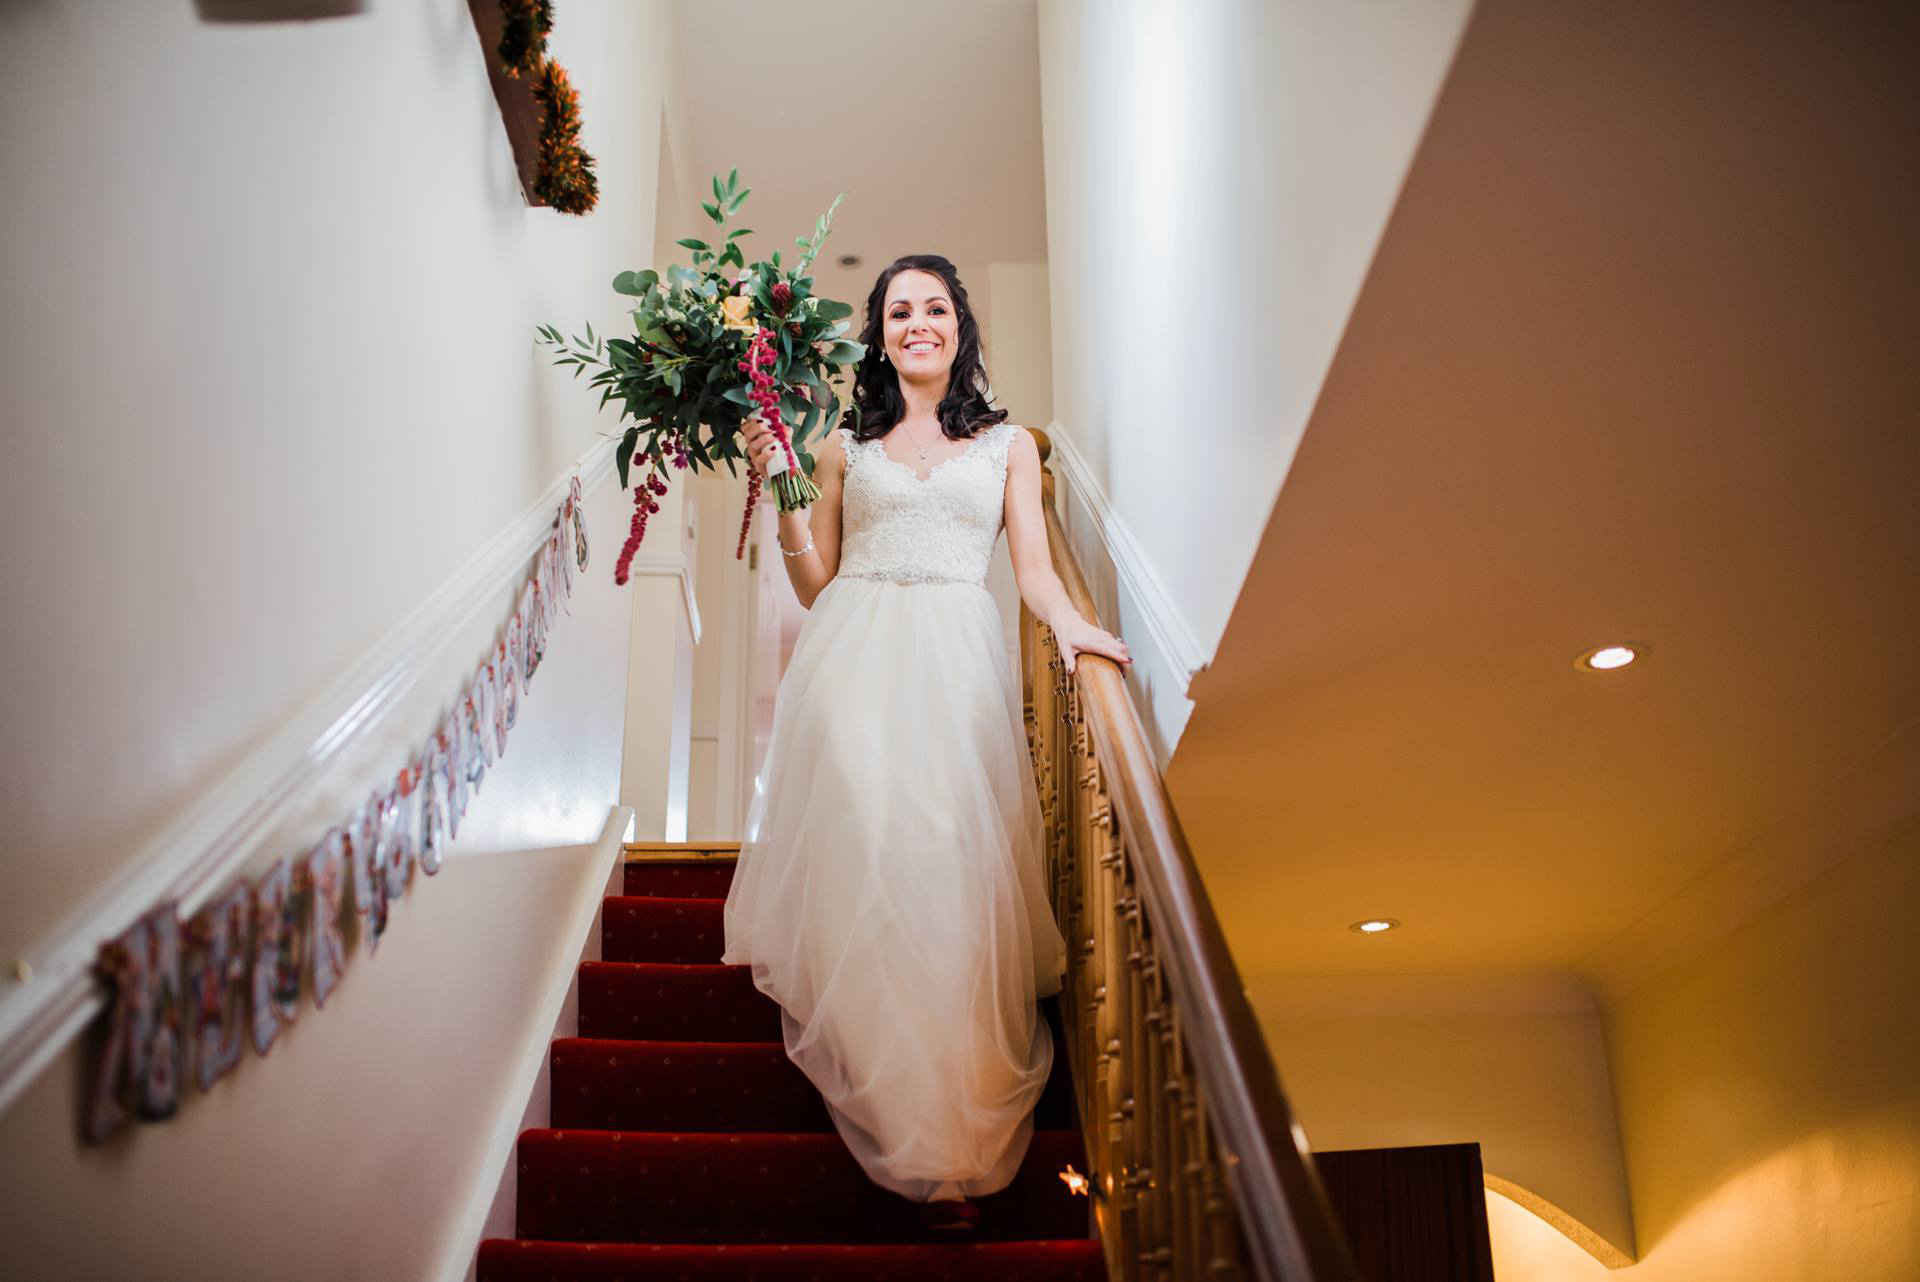 bride carrying bouquet walks down stairs